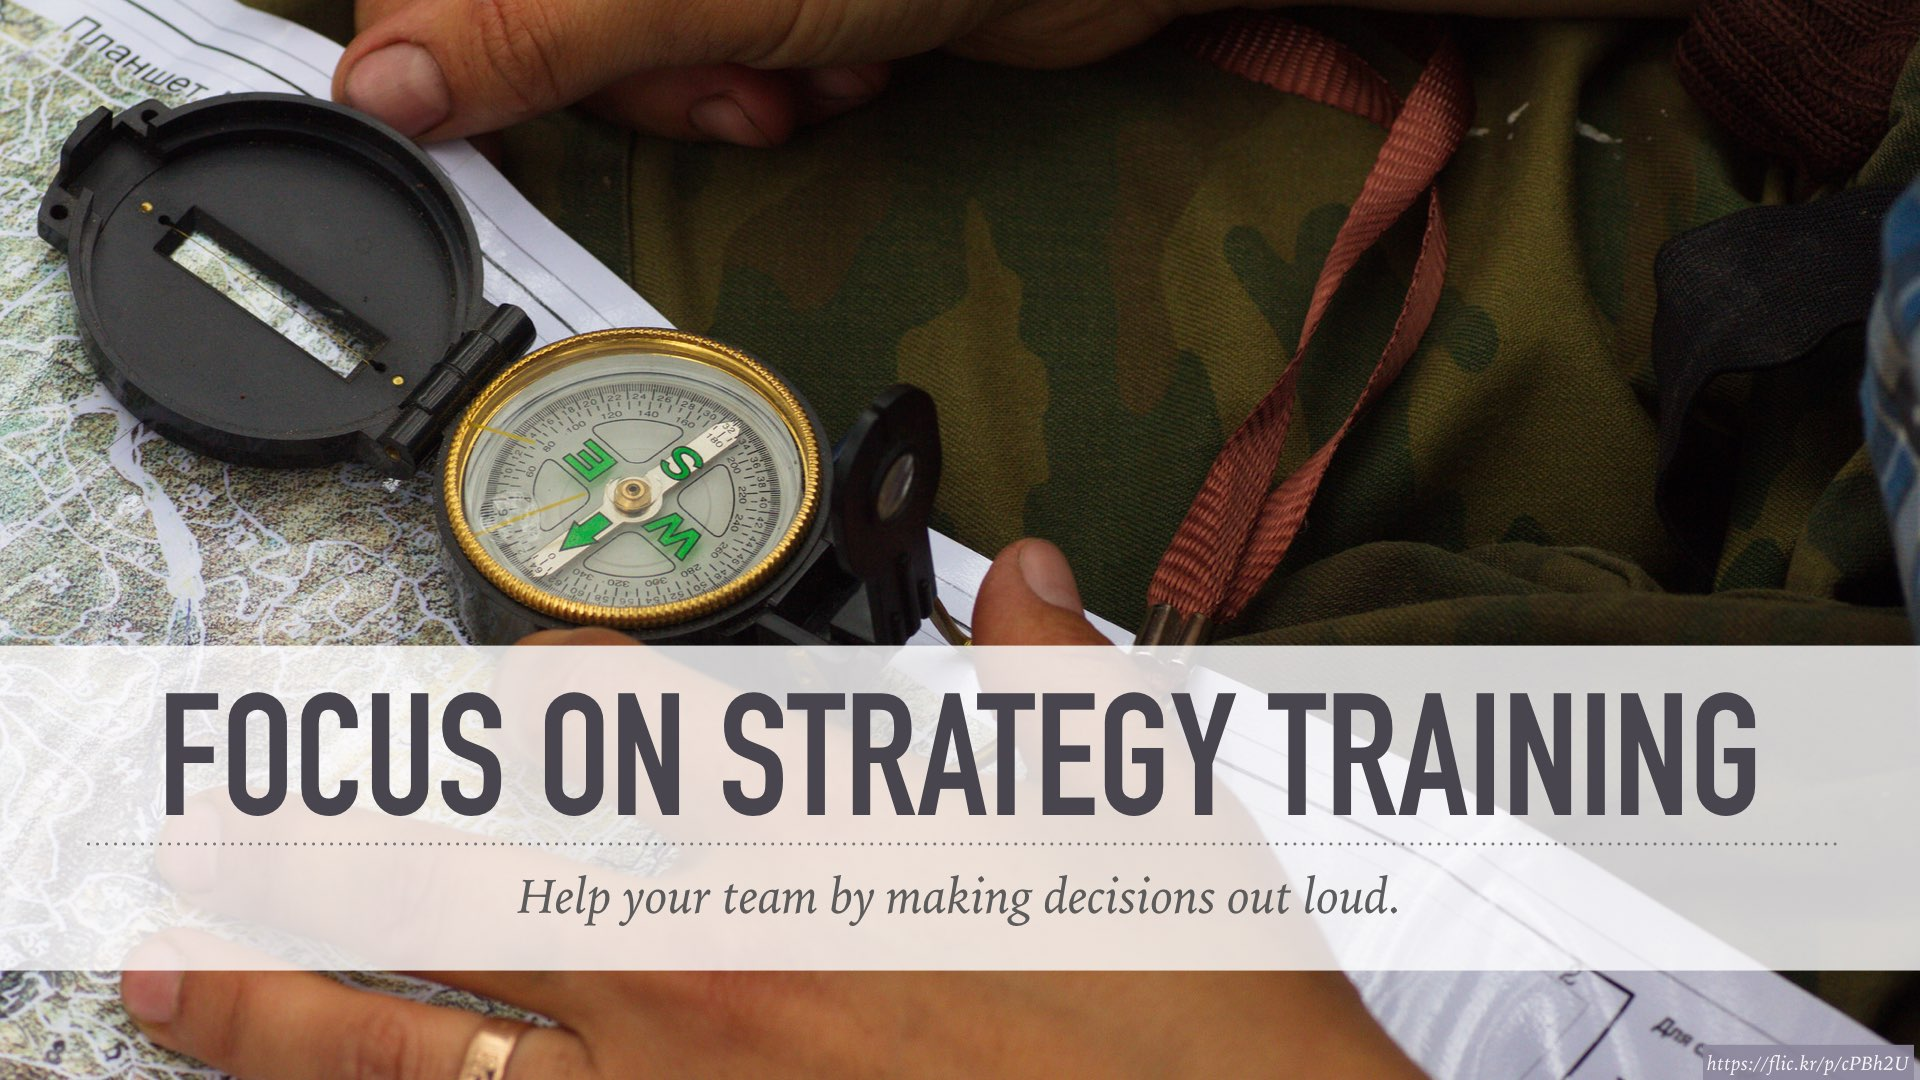 Focus on strategy training: help your team understand by making decisions out loud